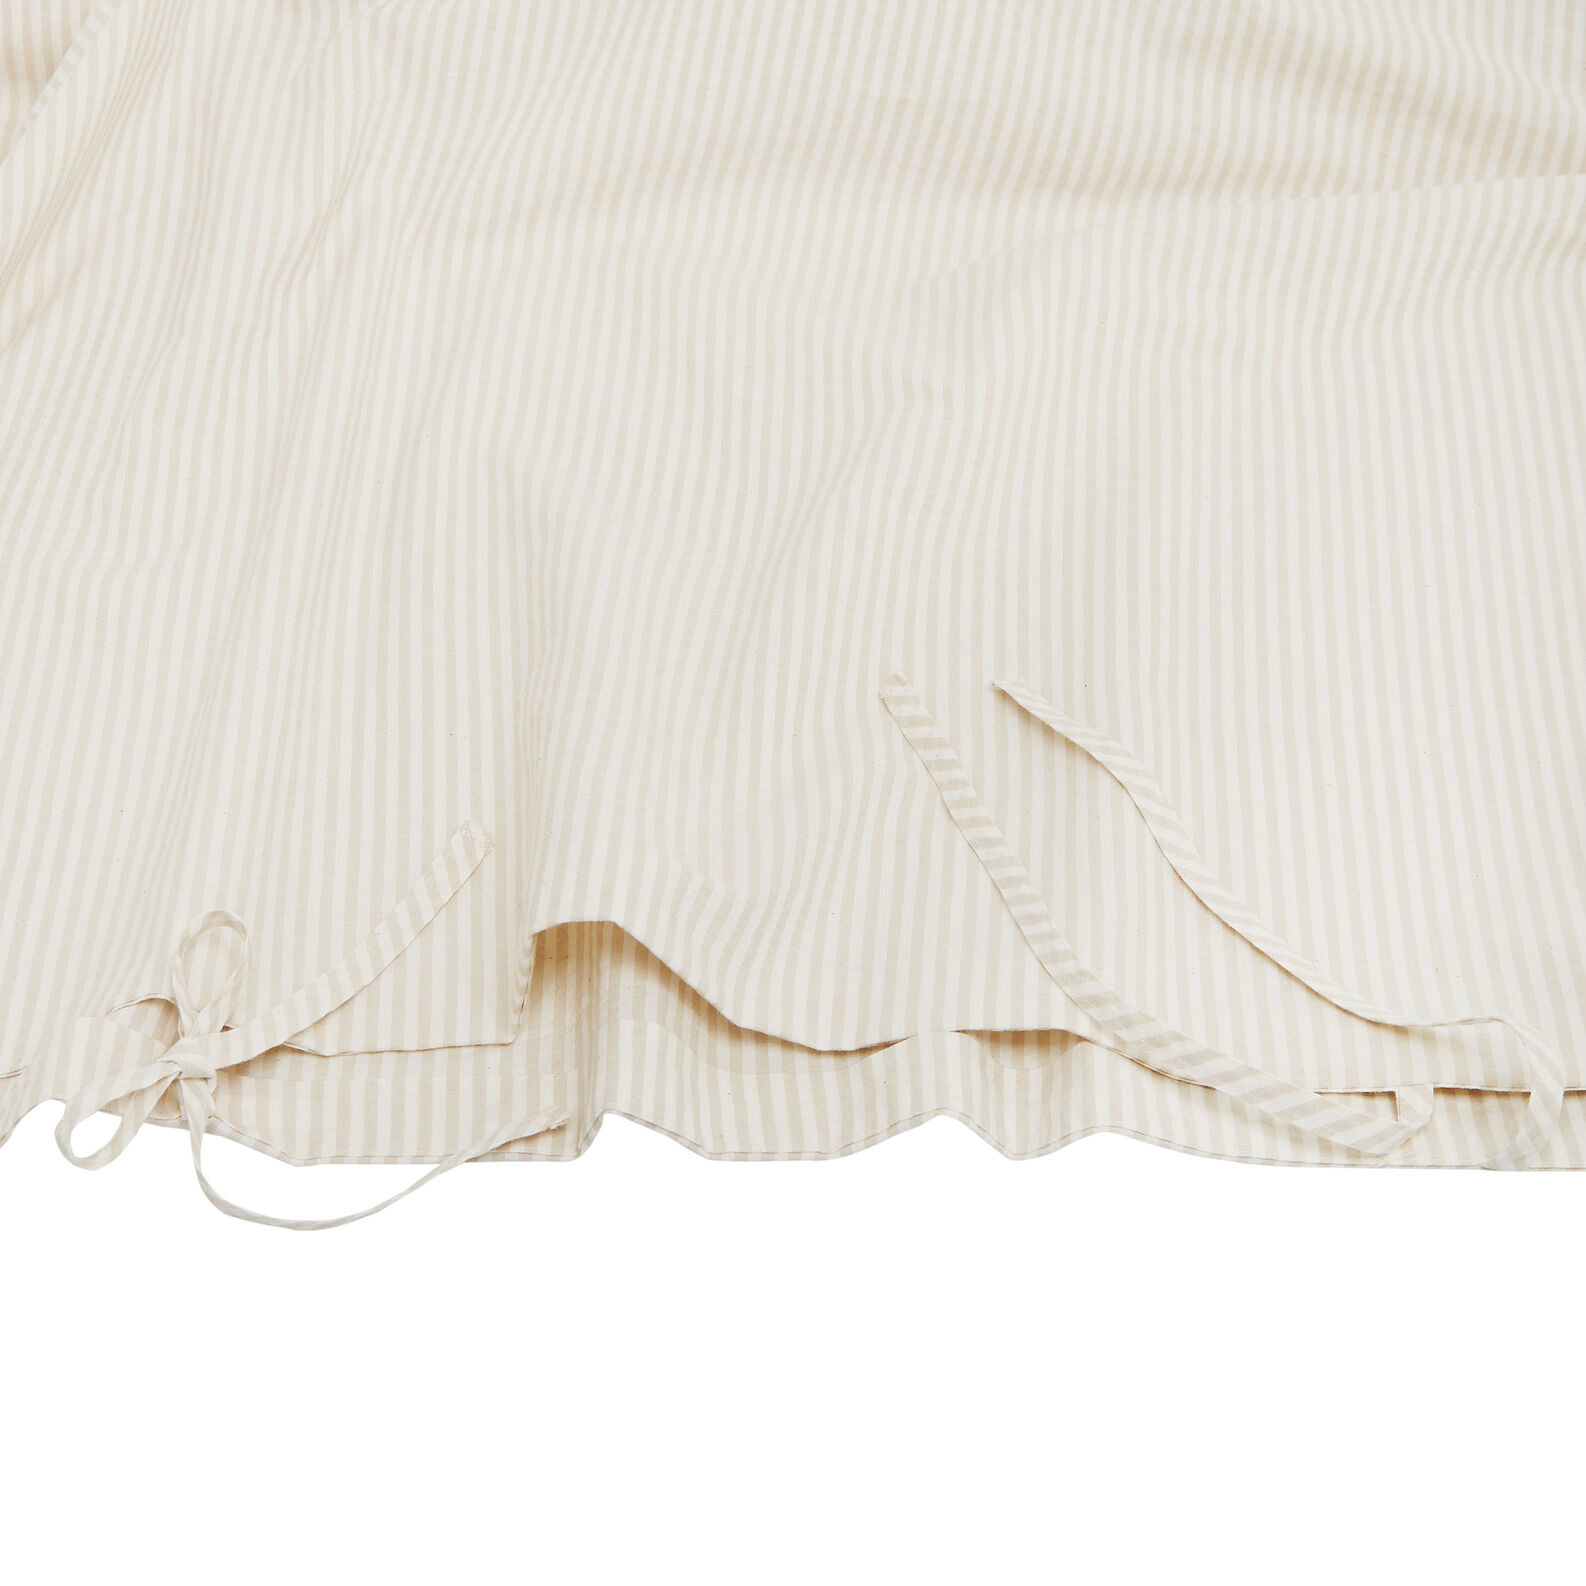 Yarn-dyed striped cotton duvet cover